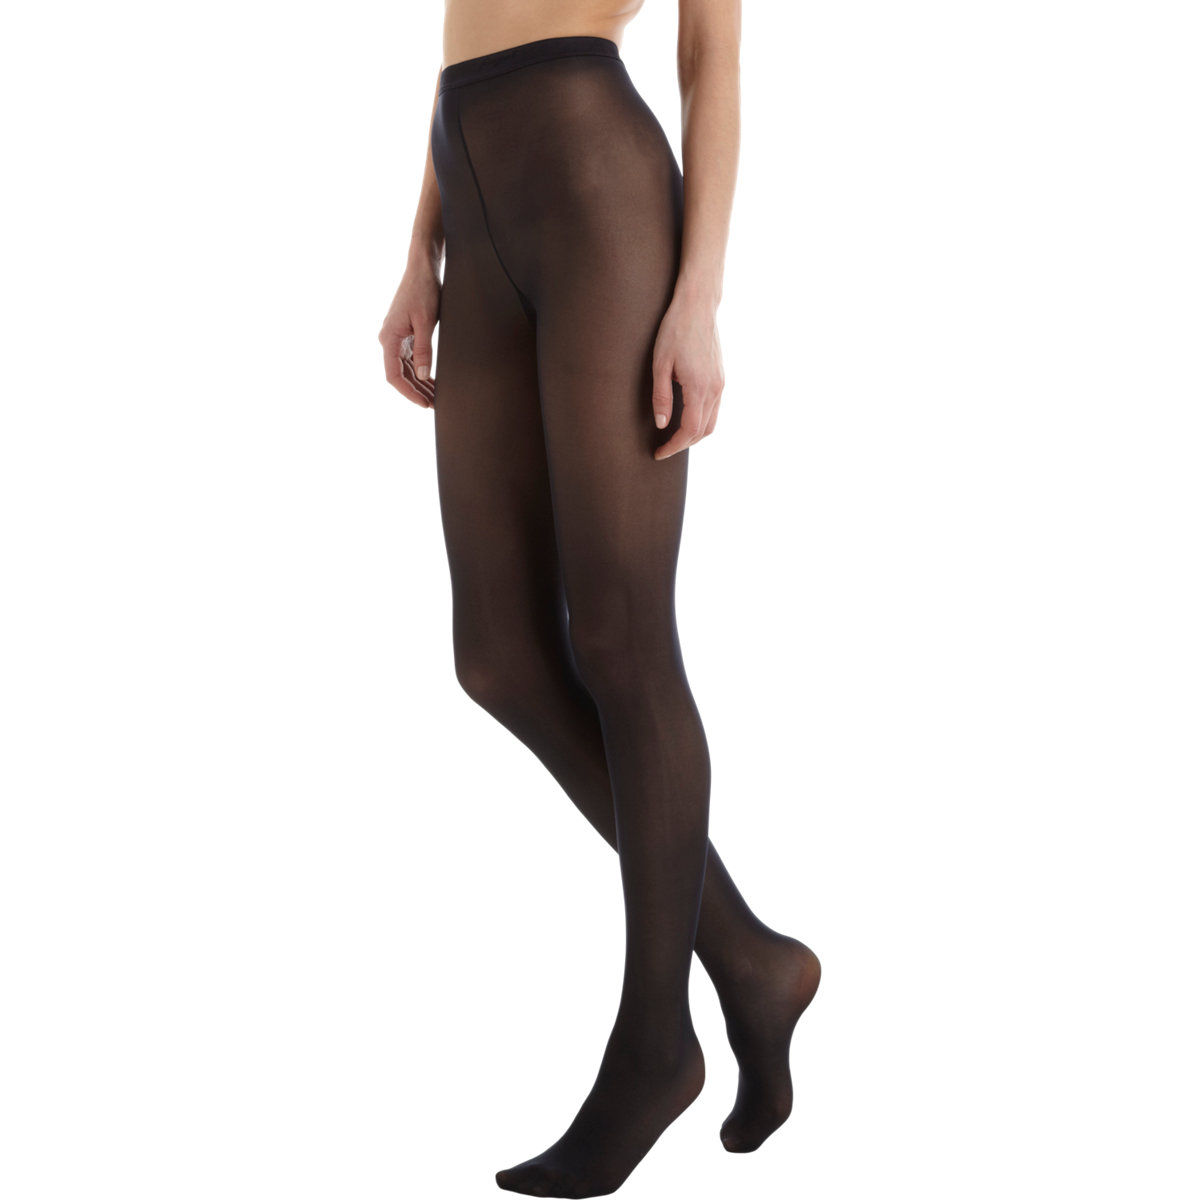 If you're anything like us, you probably have a strong love/hate relationship with tights. But don't worry, like all scary things, knowing just a little bit more about them can evaporate the fear.